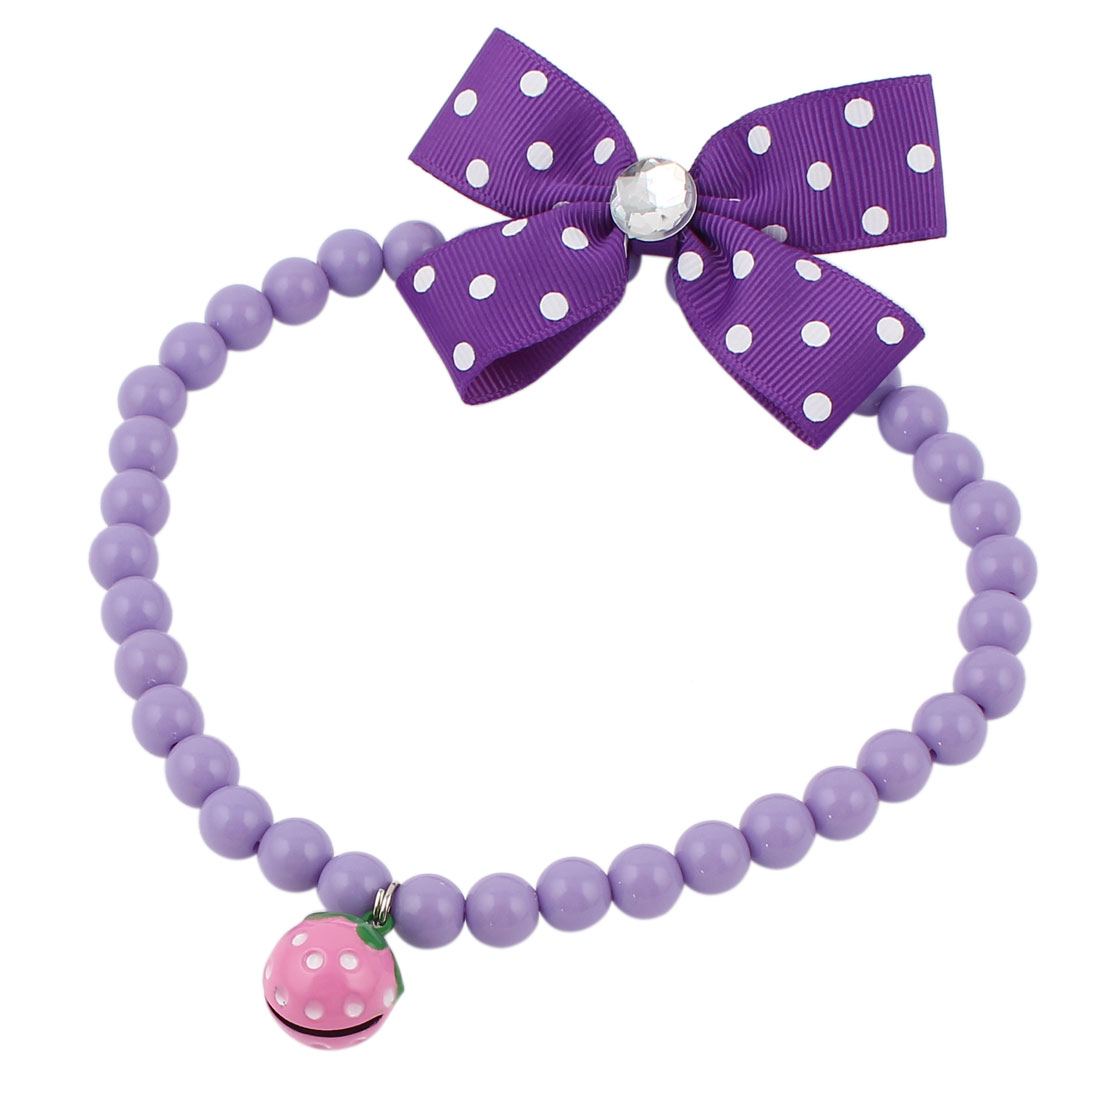 Metal Bell Pendant Bowtie Accent Pet Dog Plastic Beads Collar Necklace Purple M